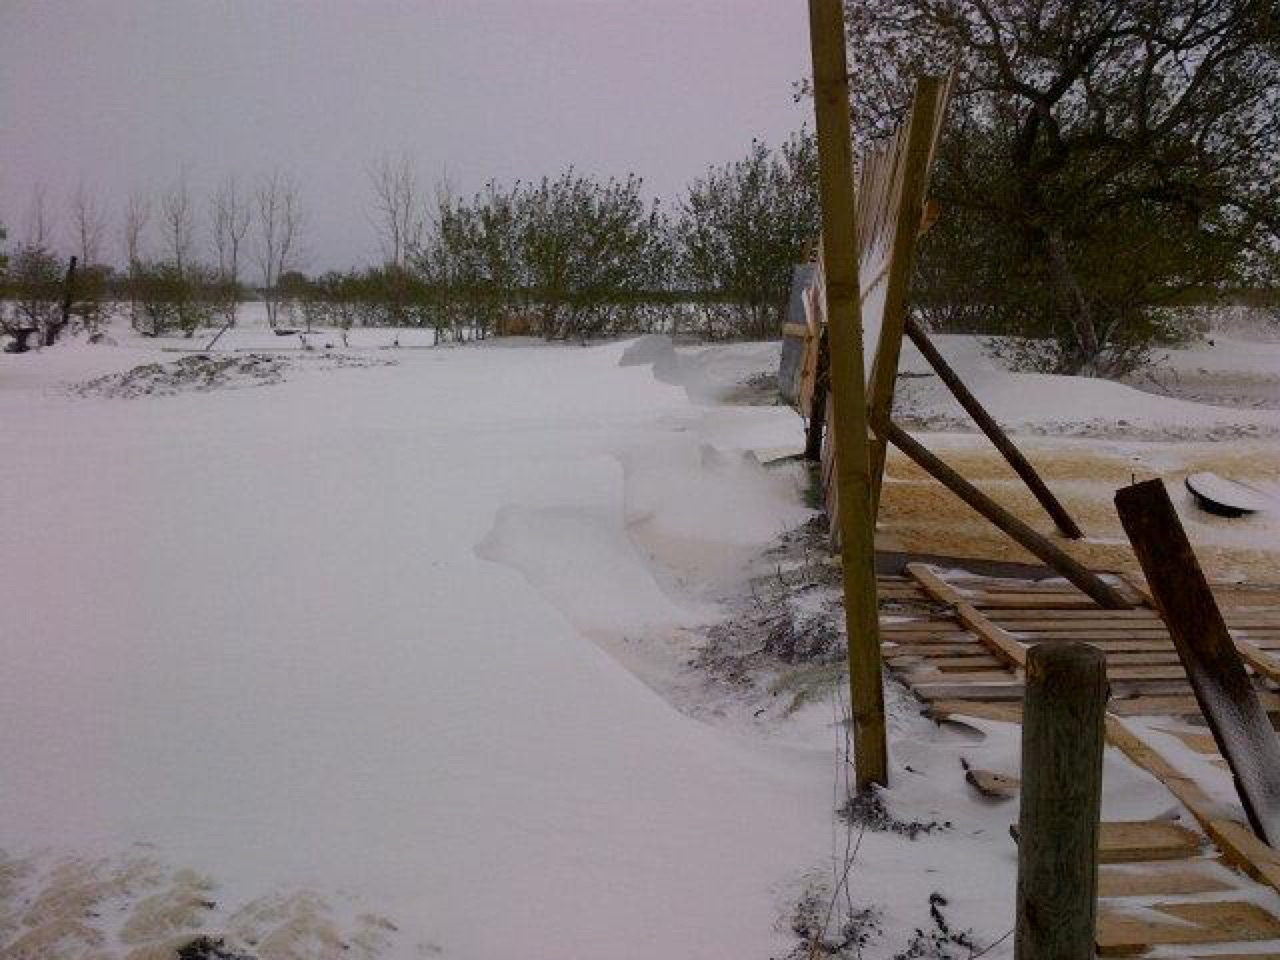 A damaged fence alongside substantial snow accumulation in MacGregor, MB.